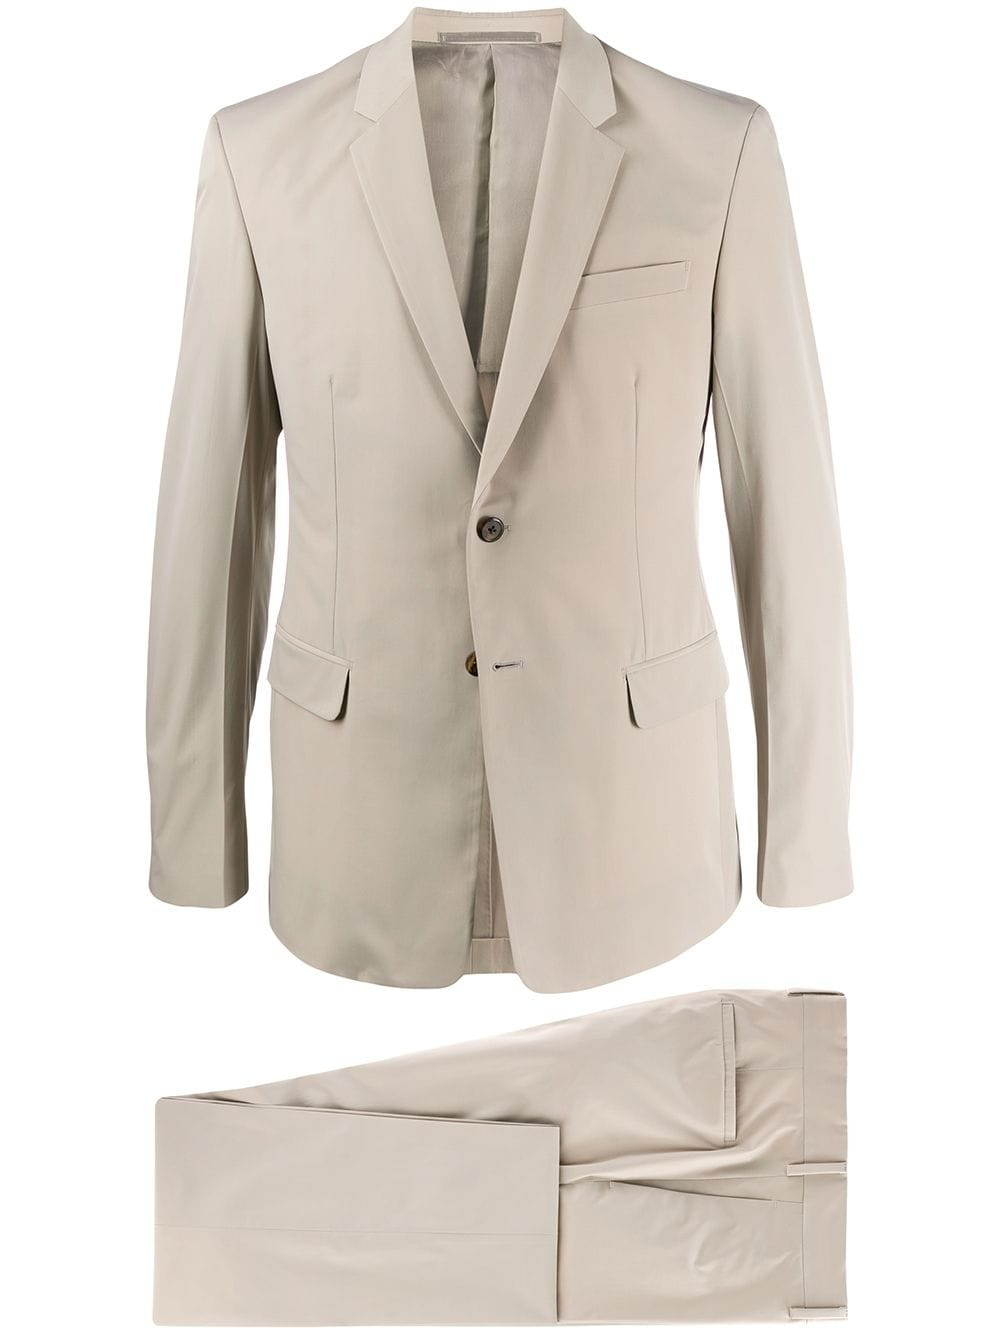 Prada single-breasted two-piece suit - Neutrals von Prada